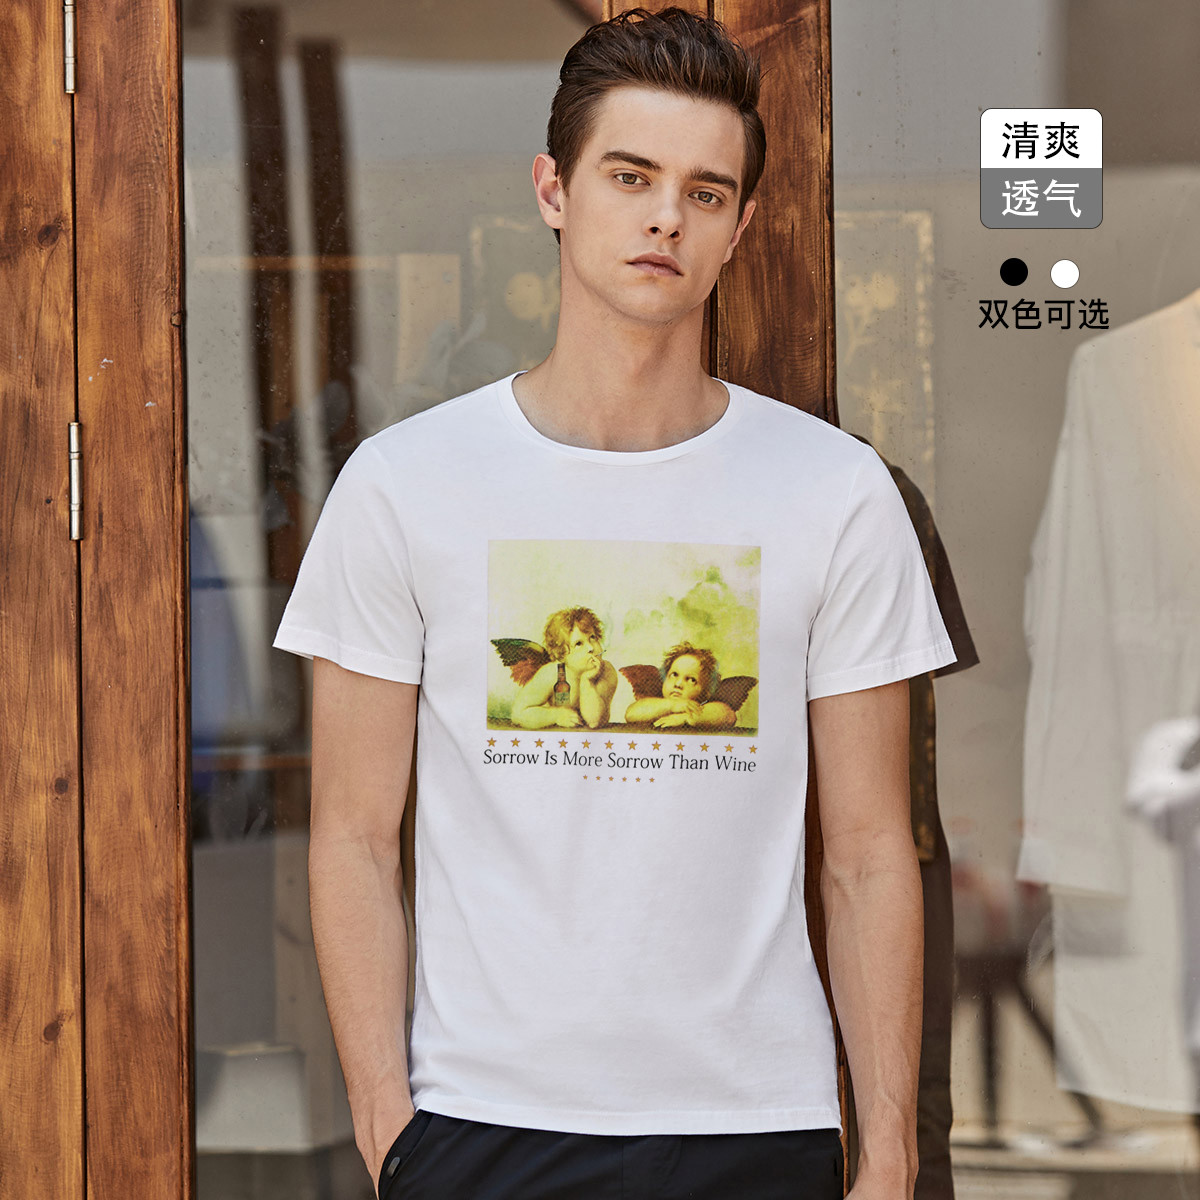 Le Ke 2020 summer new mens T-shirt personalized print loose and versatile short sleeve cotton breathable T-shirt